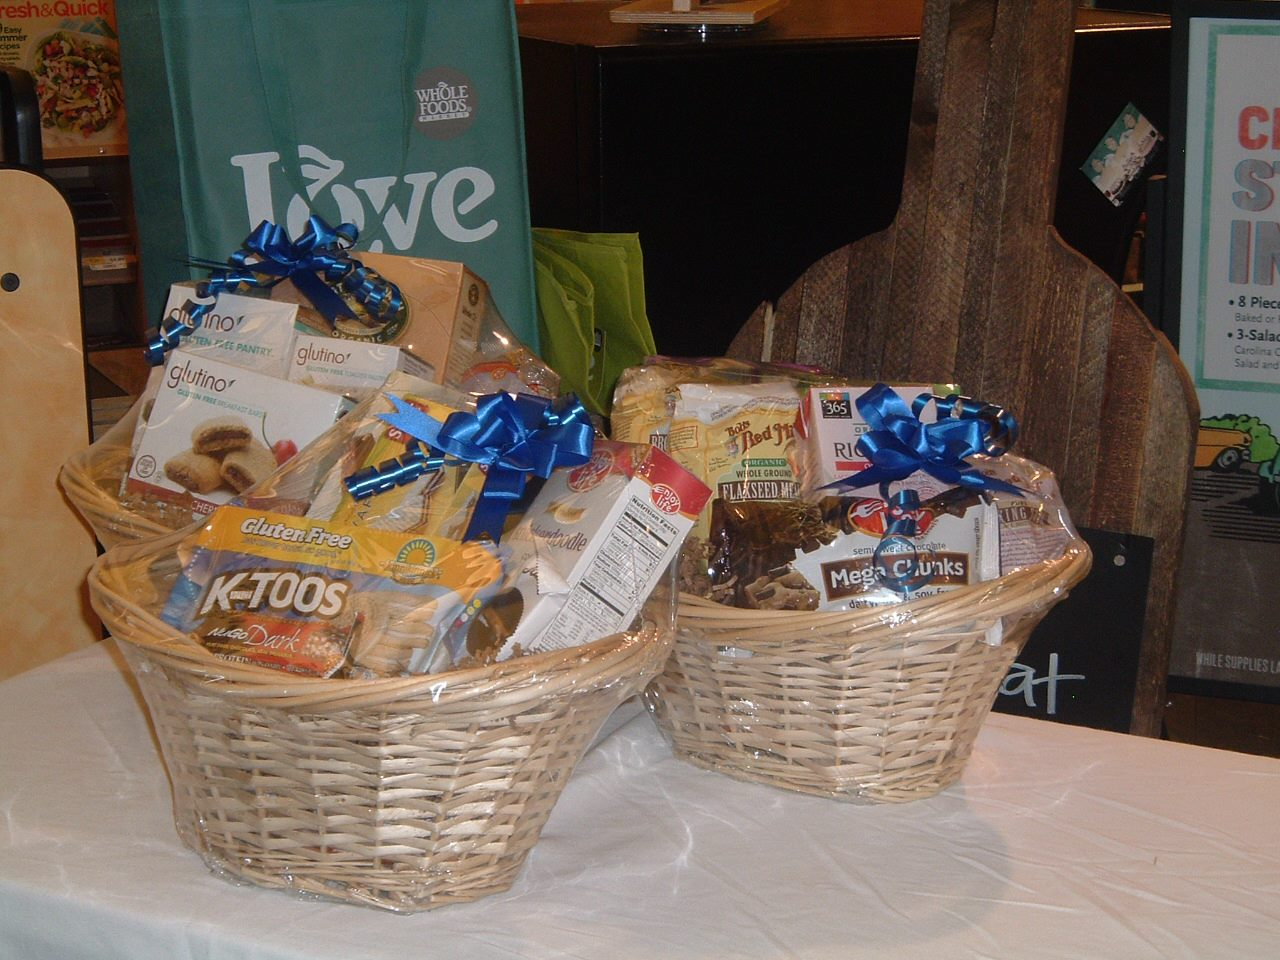 Gift Baskets! Whole Foods Market generously donated these yummy door prizes: gluten free gift baskets valued at $25 apiece. Other door prizes included free dinners from Chipotle Mexican Grill and from Bourbon & Toulouse Cajun & Creole Joint.